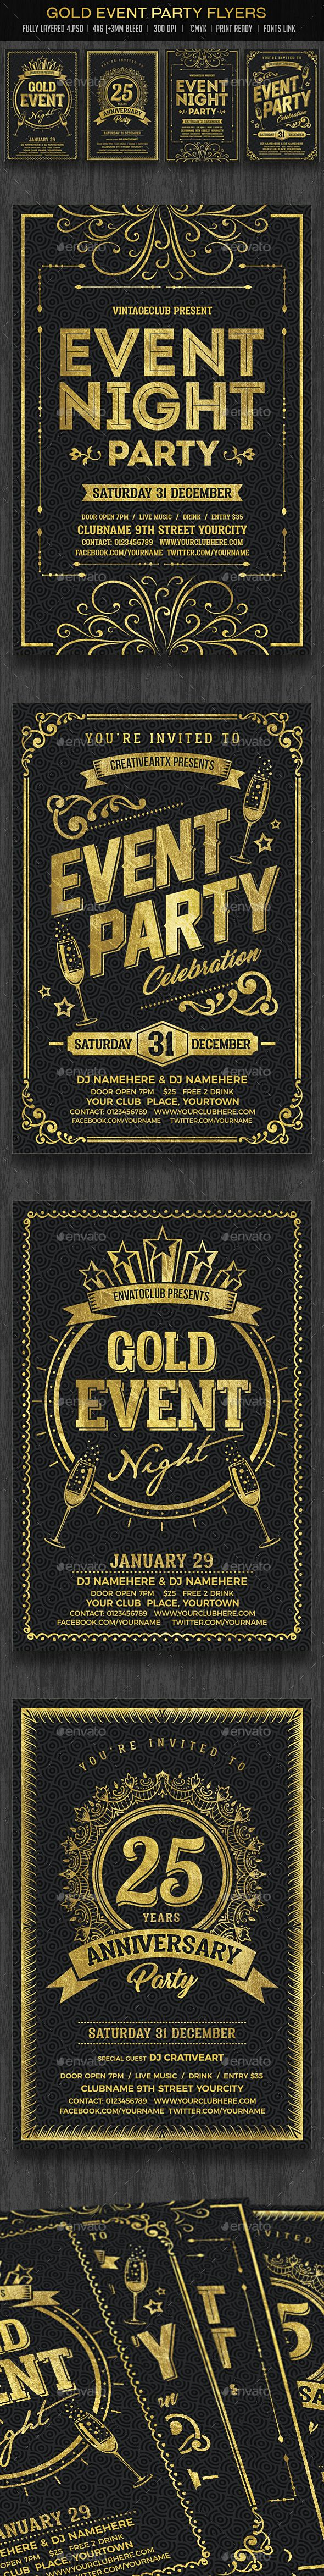 best ideas about event flyers flyer design gold event flyers set